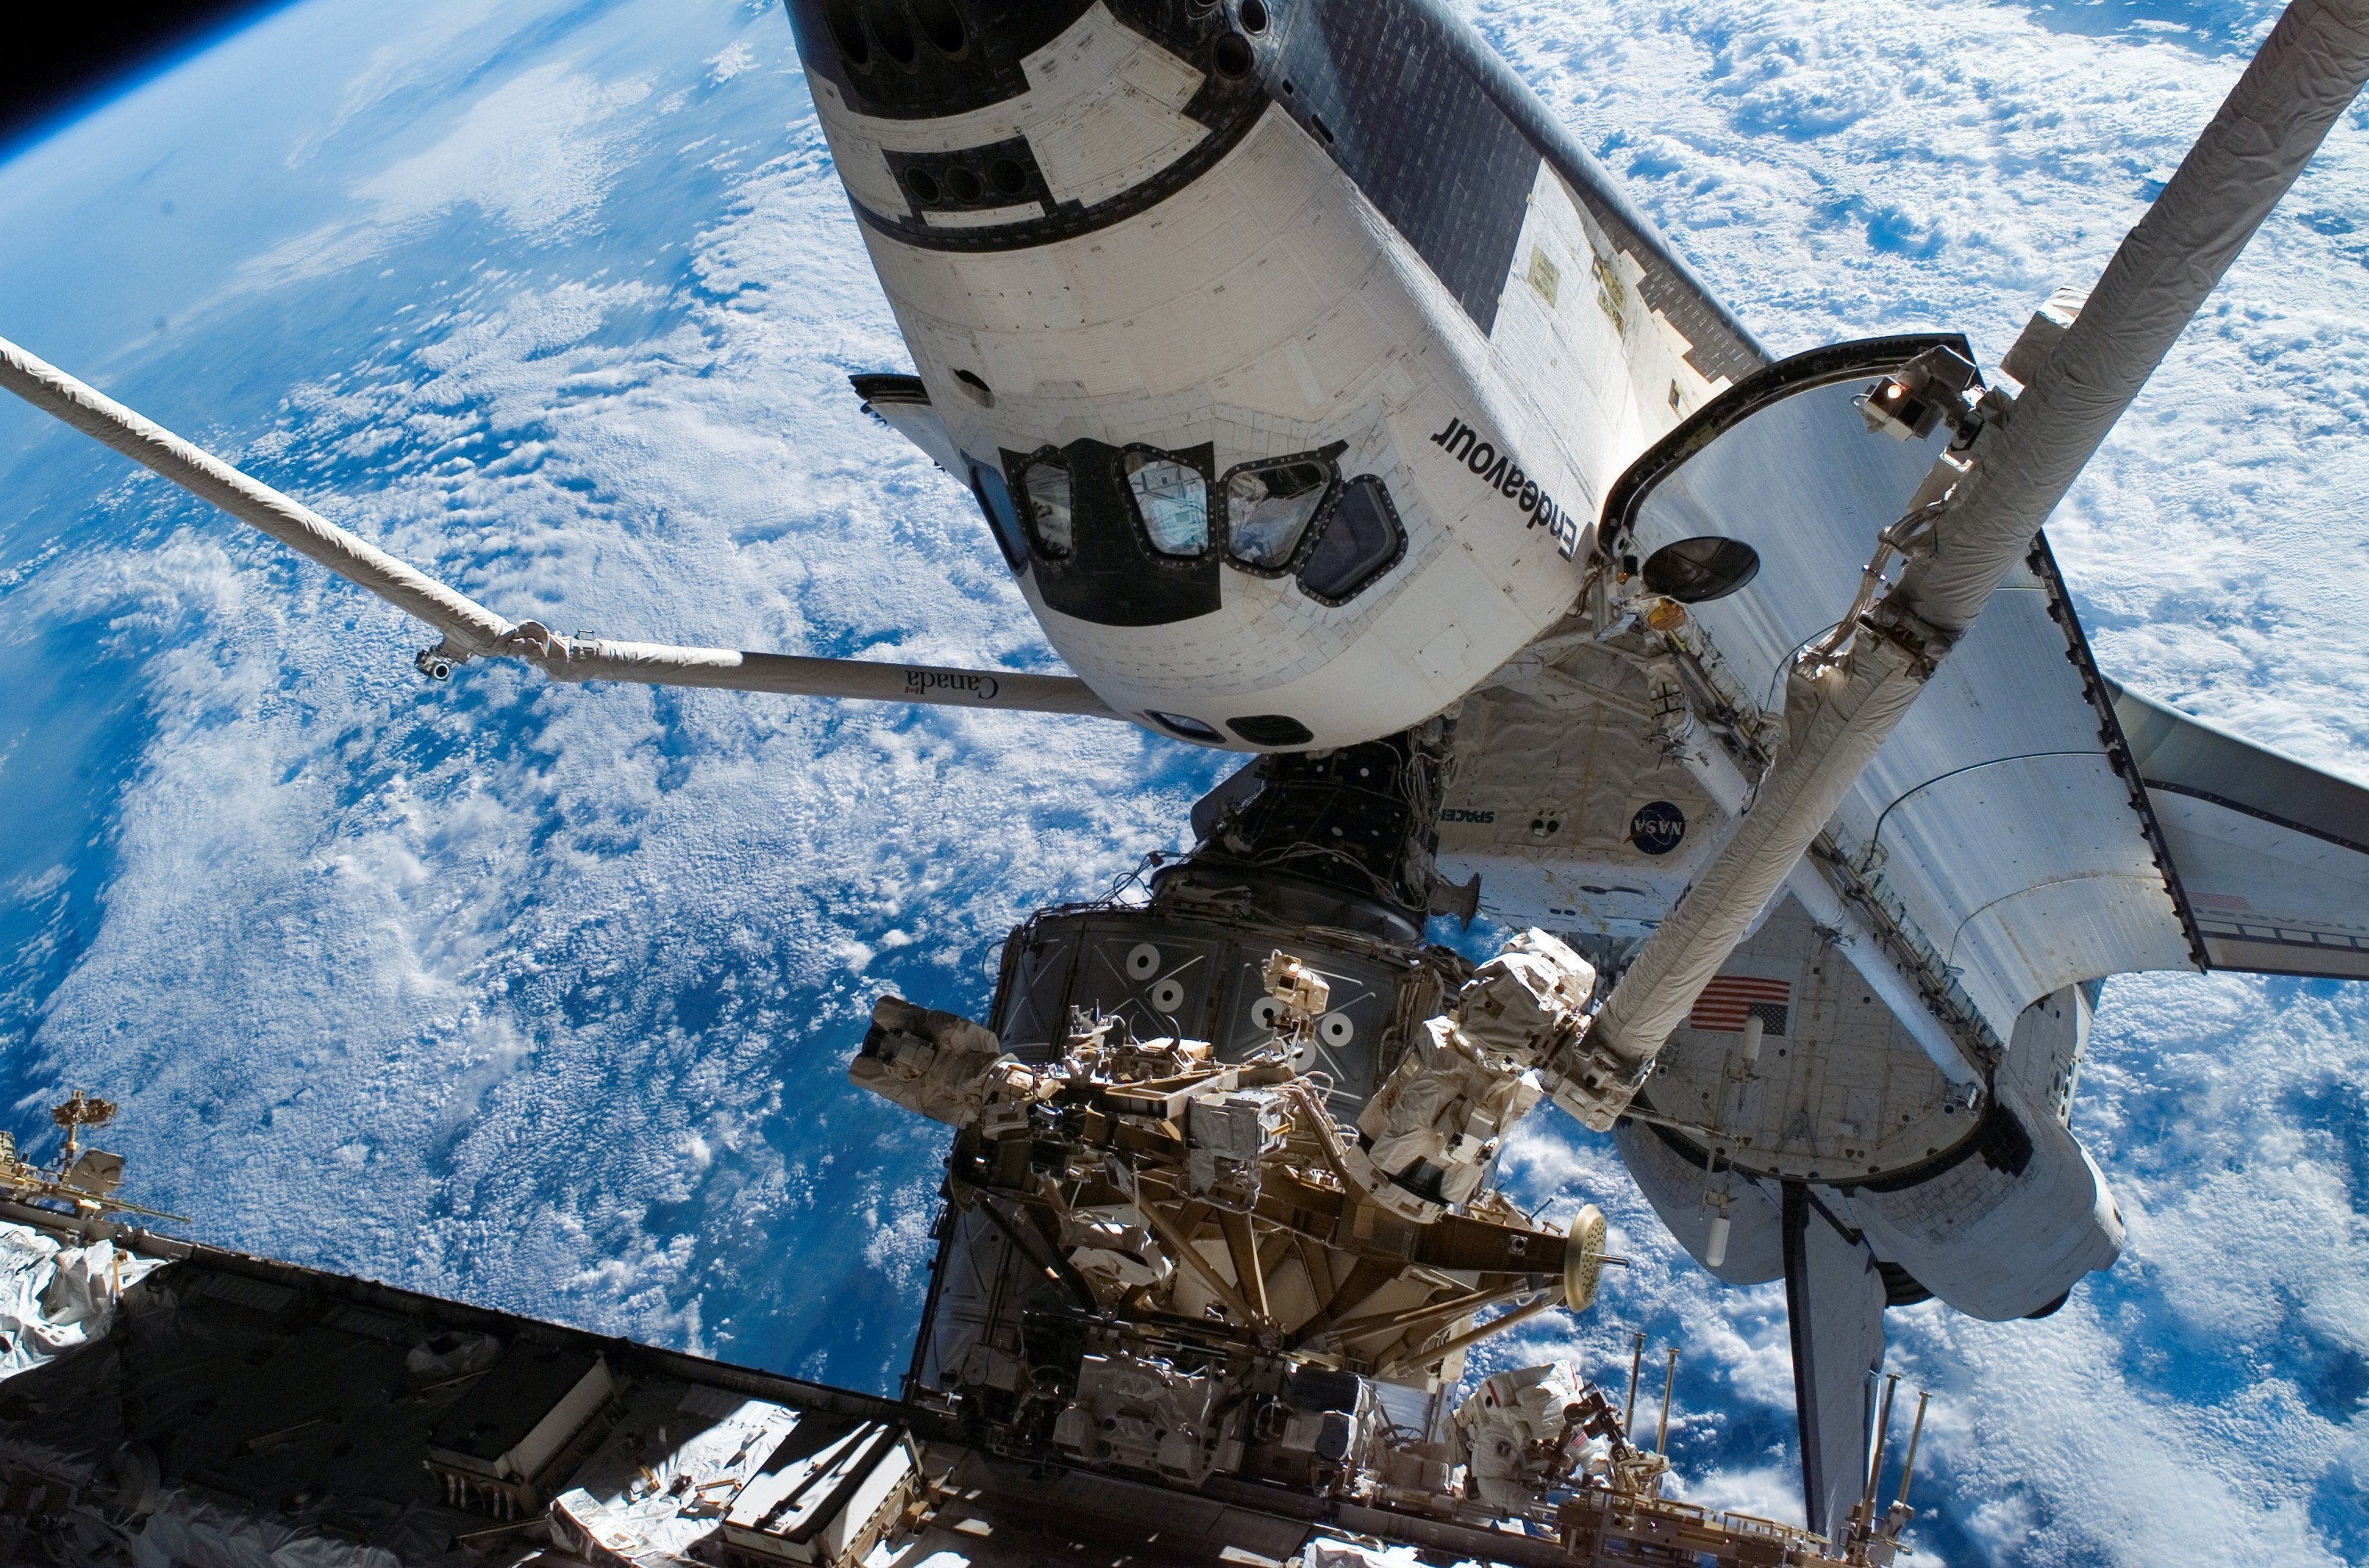 56561 download wallpaper Universe, Land, Earth, Blue Planet, Iss, Shuttle Endeavour, Shuttle Endeavor screensavers and pictures for free